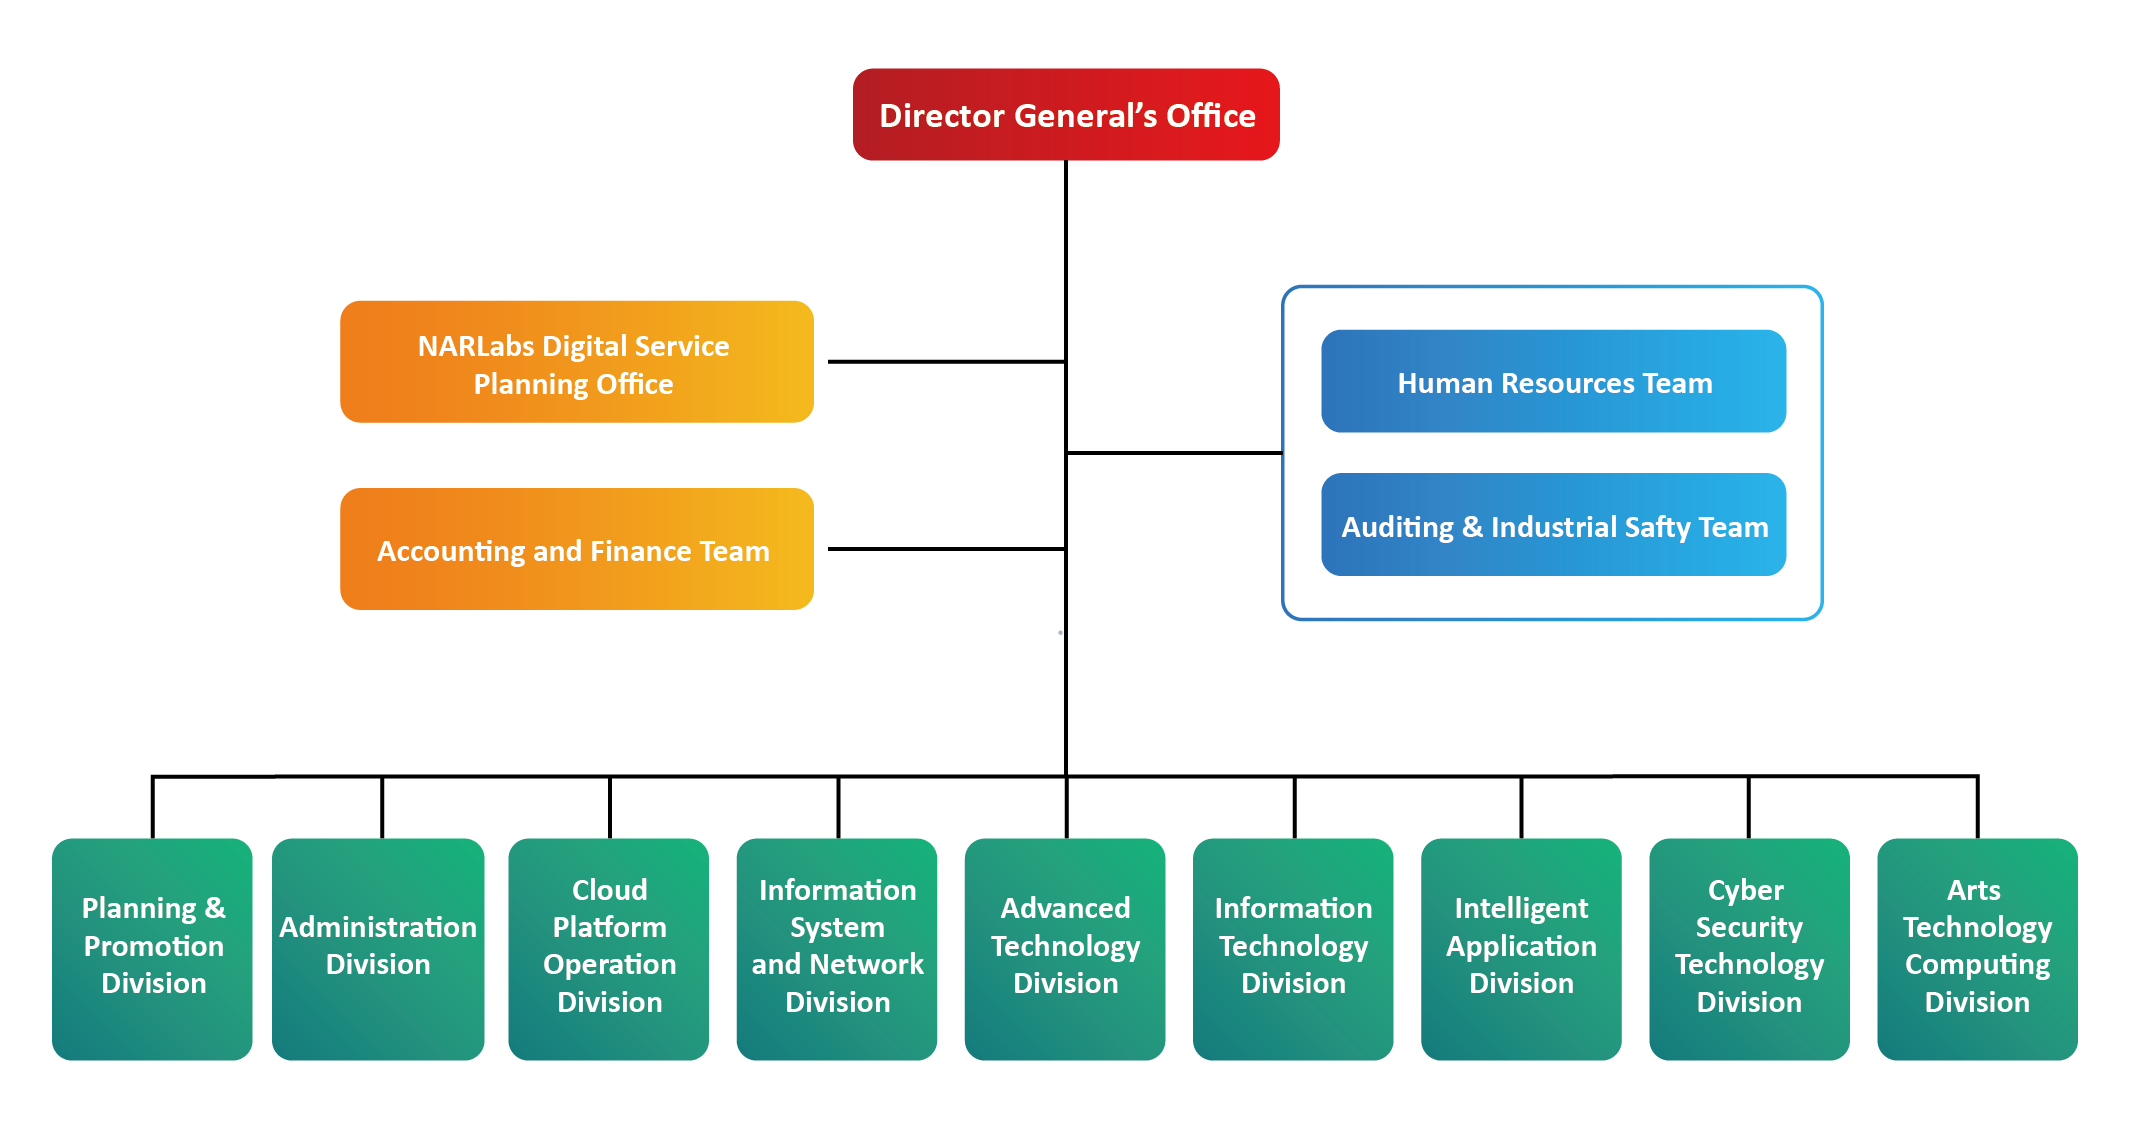 Organizational Structure of NCHC